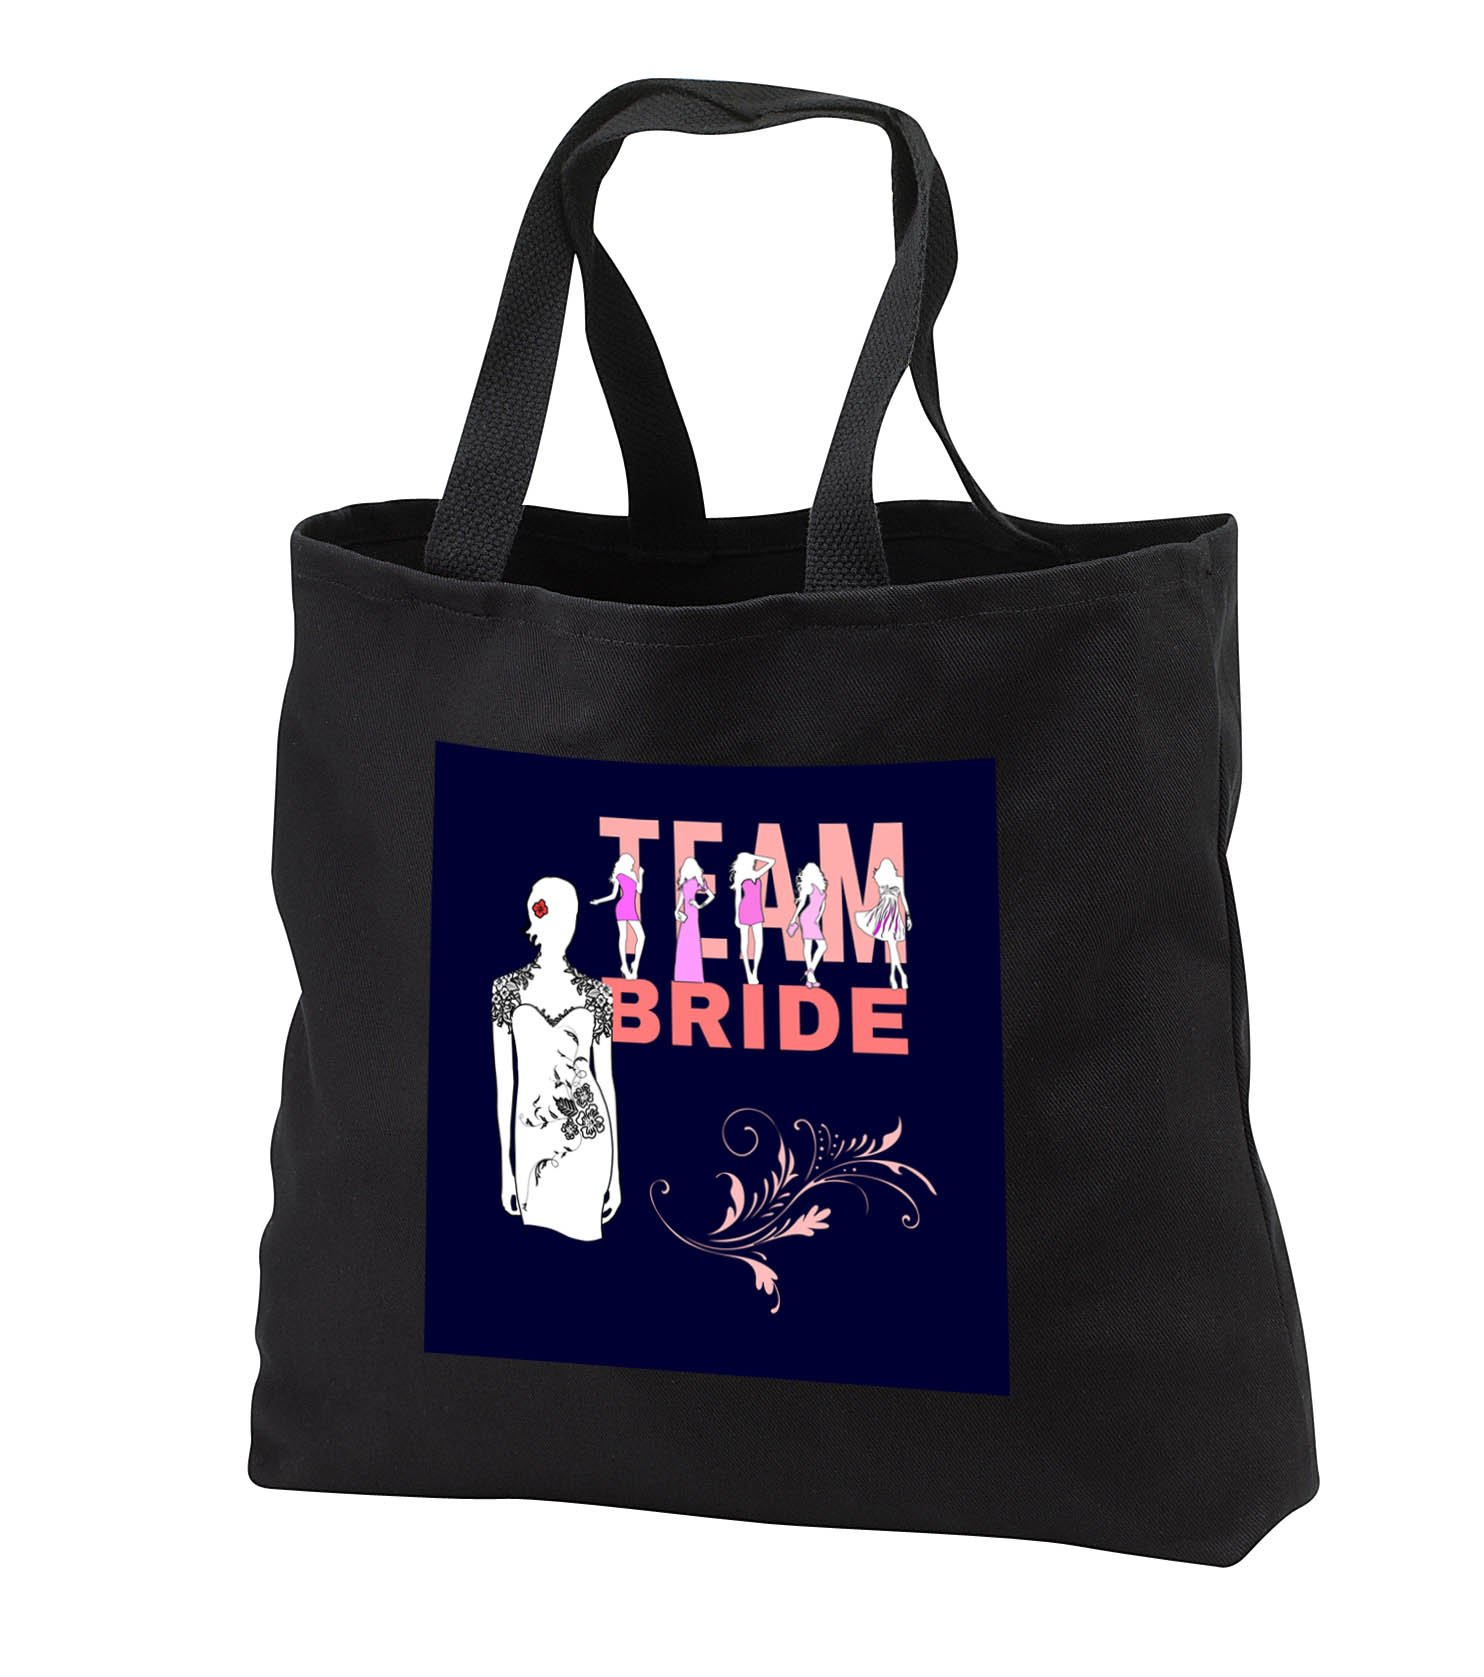 Alexis Design - Wedding - Team bride, girls in violet dresses, bride in the white dress on blue - Tote Bags - Black Tote Bag JUMBO 20w x 15h x 5d (tb_283767_3)